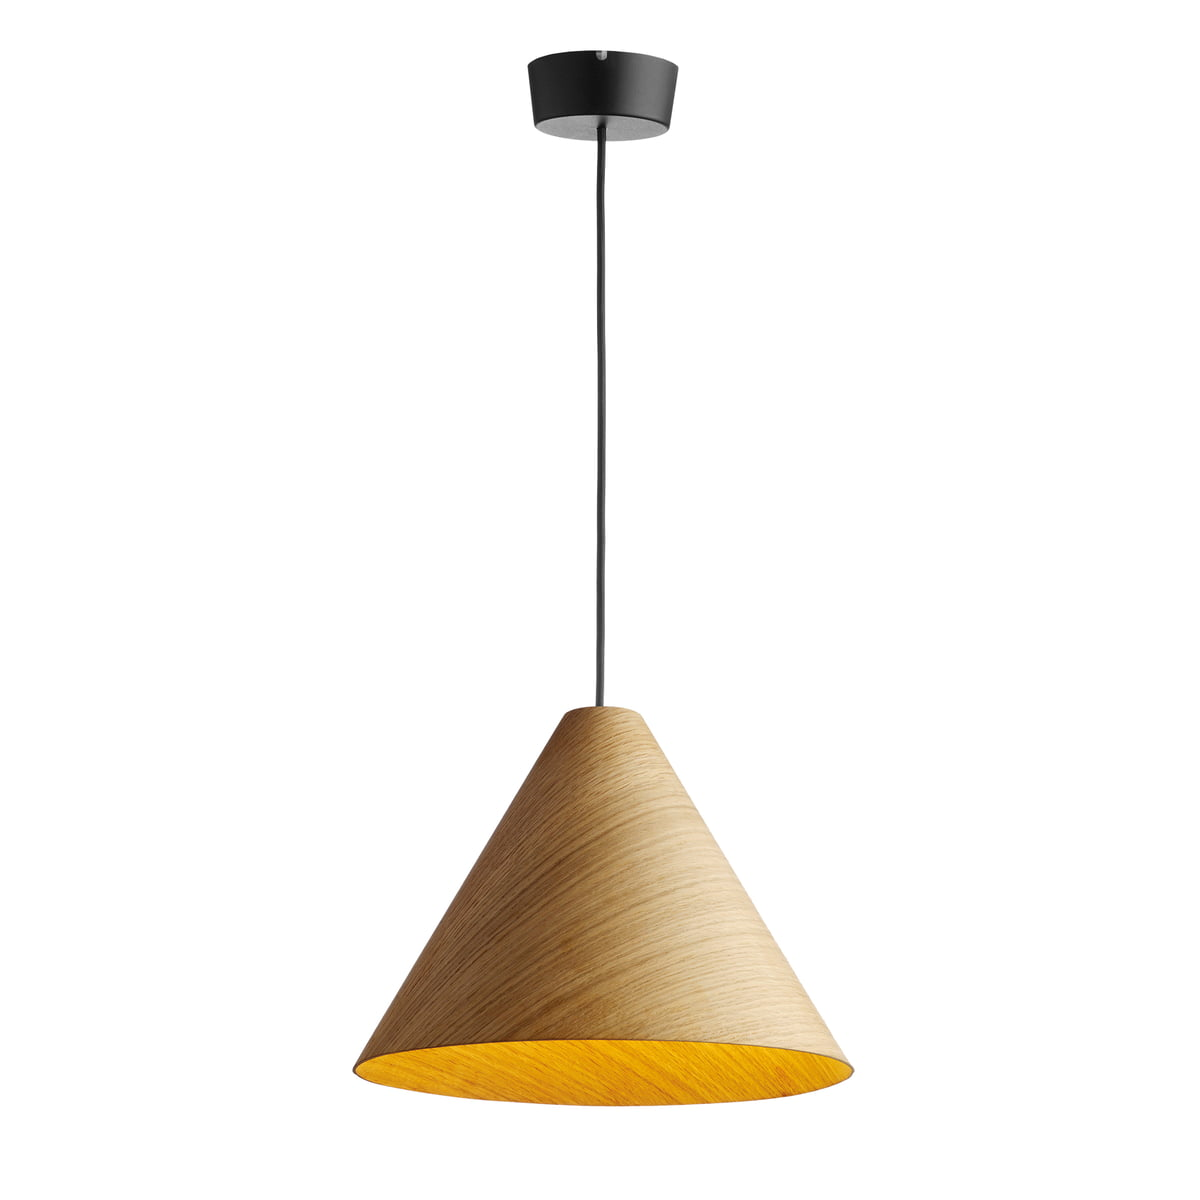 30 degree pendant lamp by hay in the shop